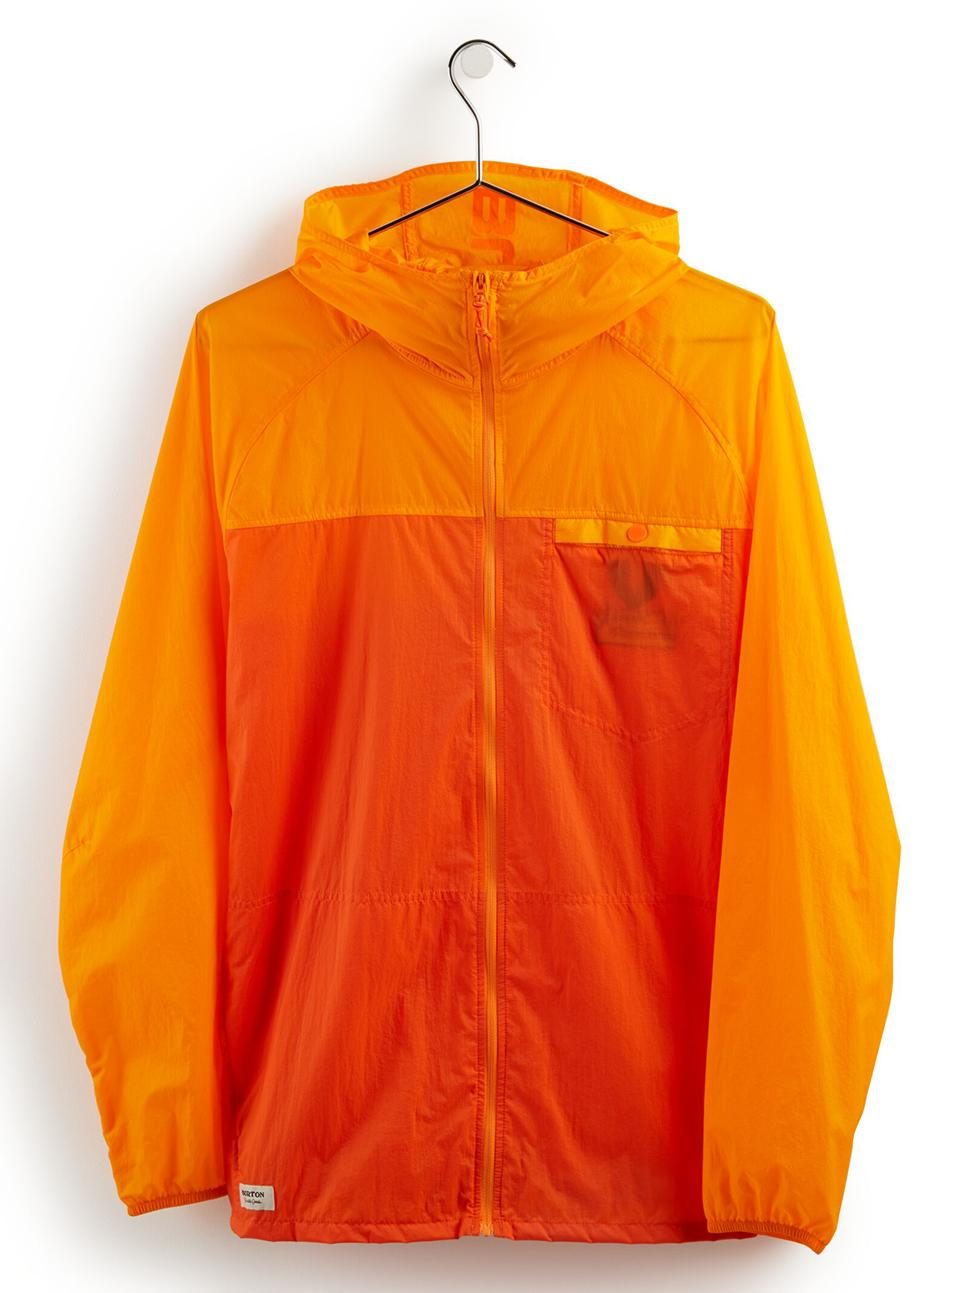 This ultra lightweight shell will protect you from those random summer rain showers, and stores conveniently and easily in it's own pocket, so life doesn't have to start and stop with the weather.